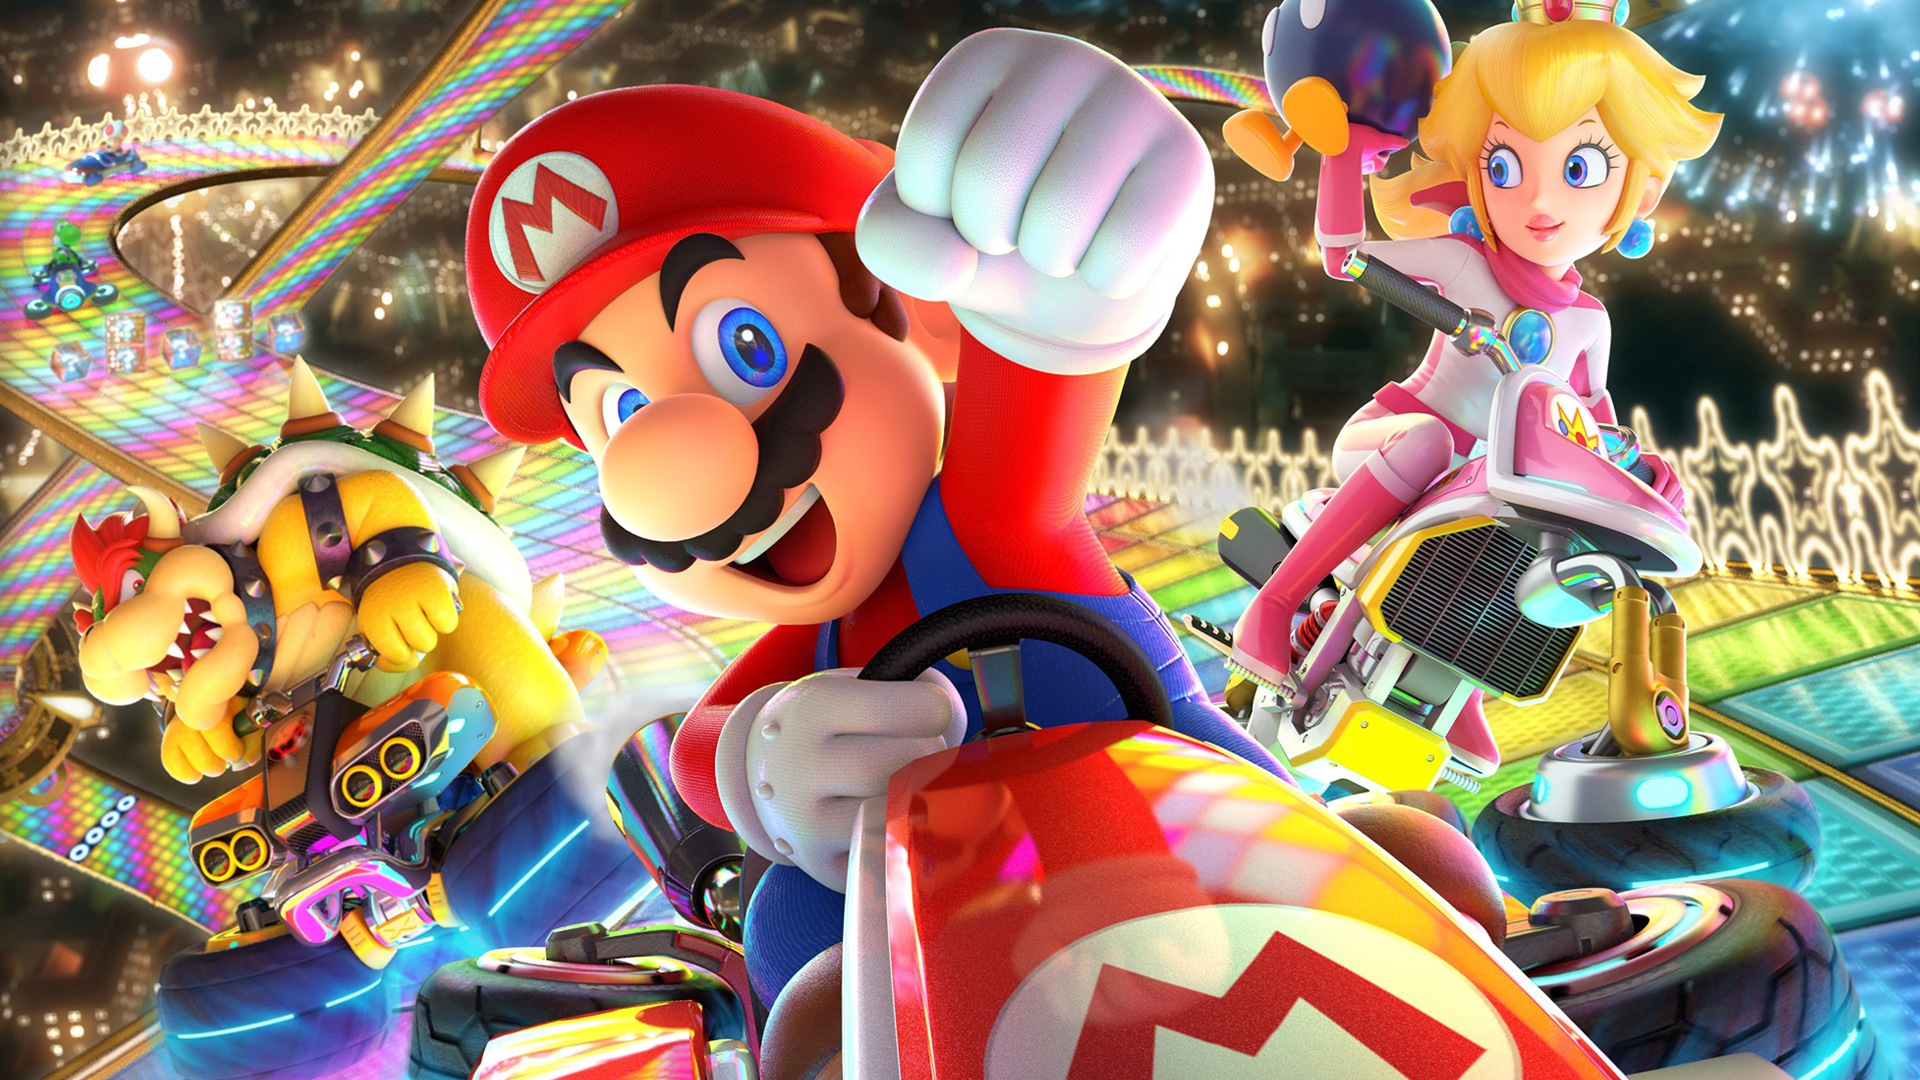 Toys R Us Will Have The Nintendo Switch In Stock With Mario Kart 8 Deluxe This Friday Gametyrant